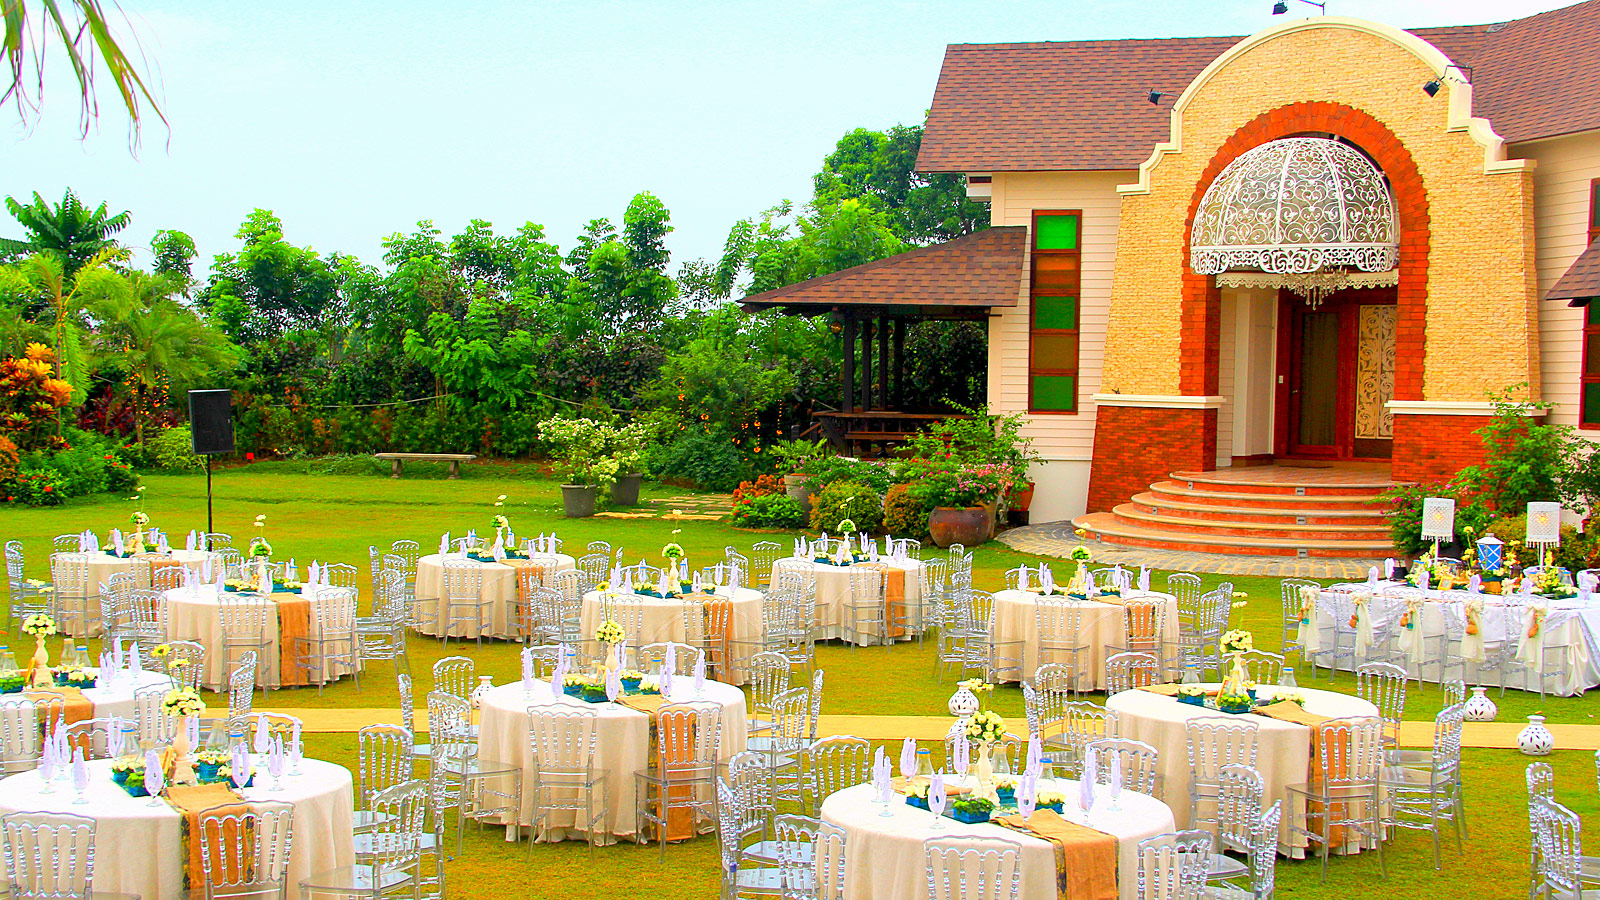 Red Tag Caterers, Catering Services In Chandigarh, Outdoor Catering Services In Chandigarh, Best Catering In Chandigarh, Luxury Catering Services In Chandigarh, weeding Catering Services In Chandigarh